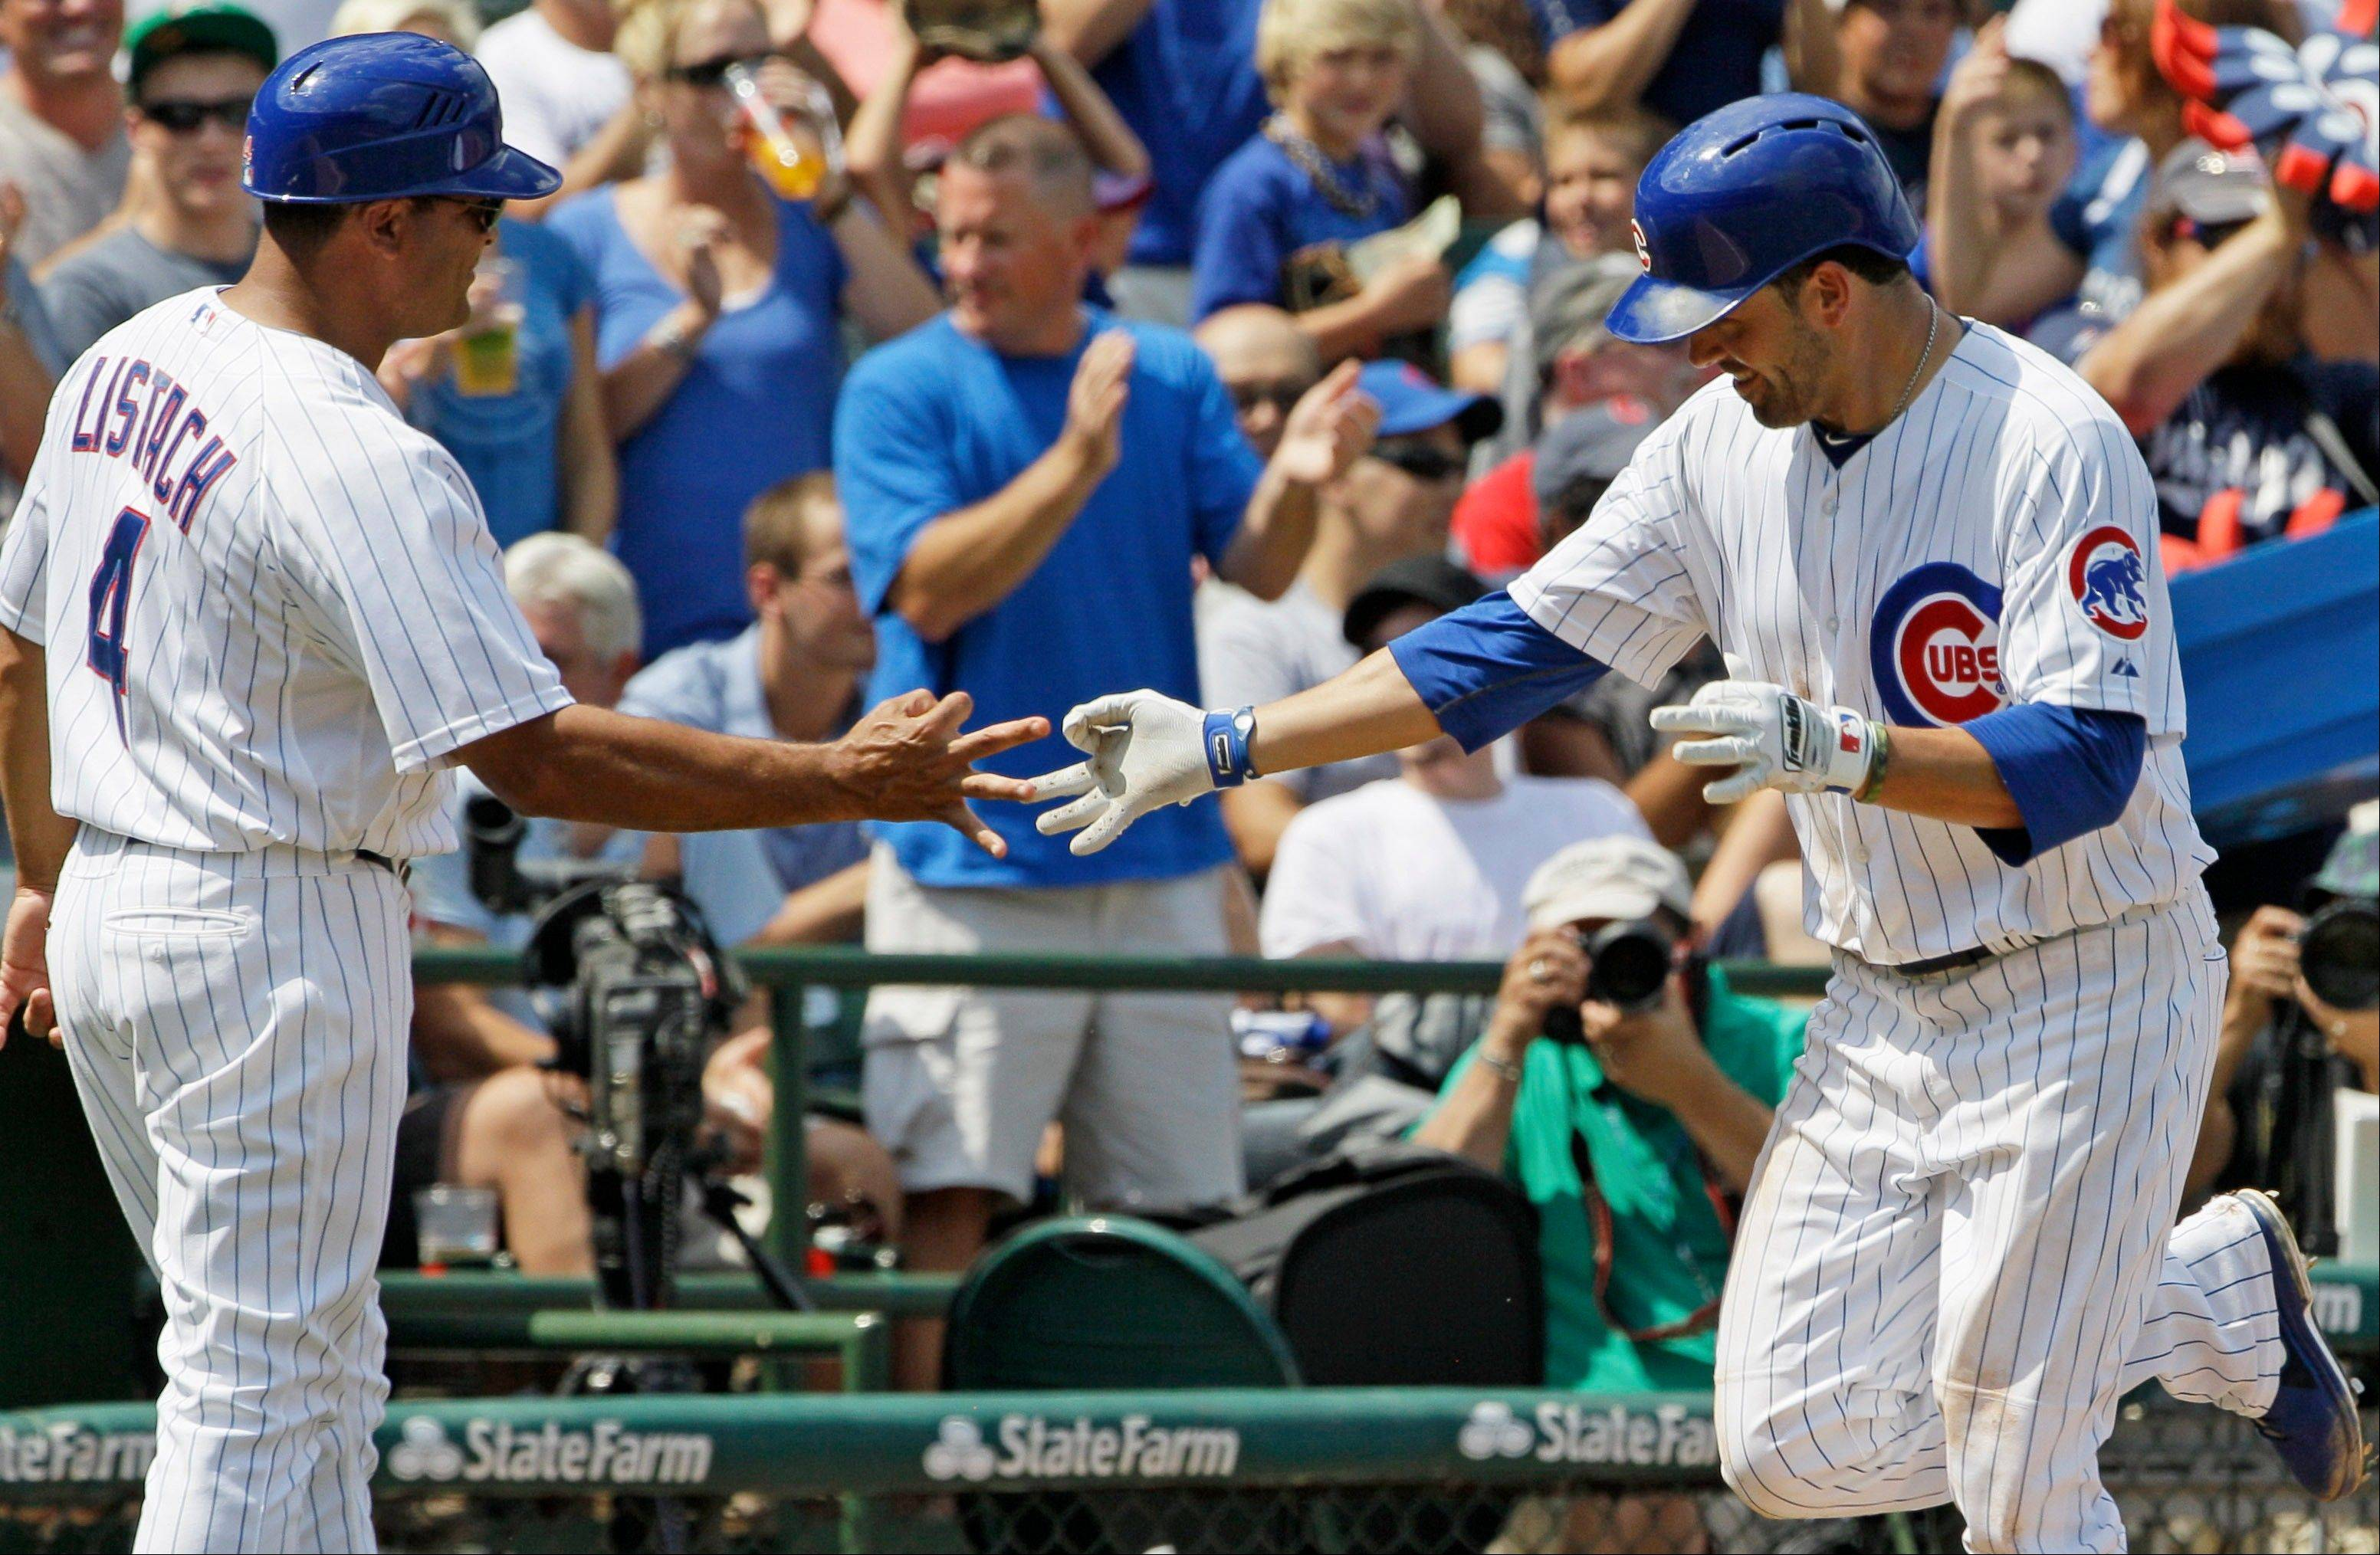 DeJesus homers twice to lead Cubs over Astros 7-2